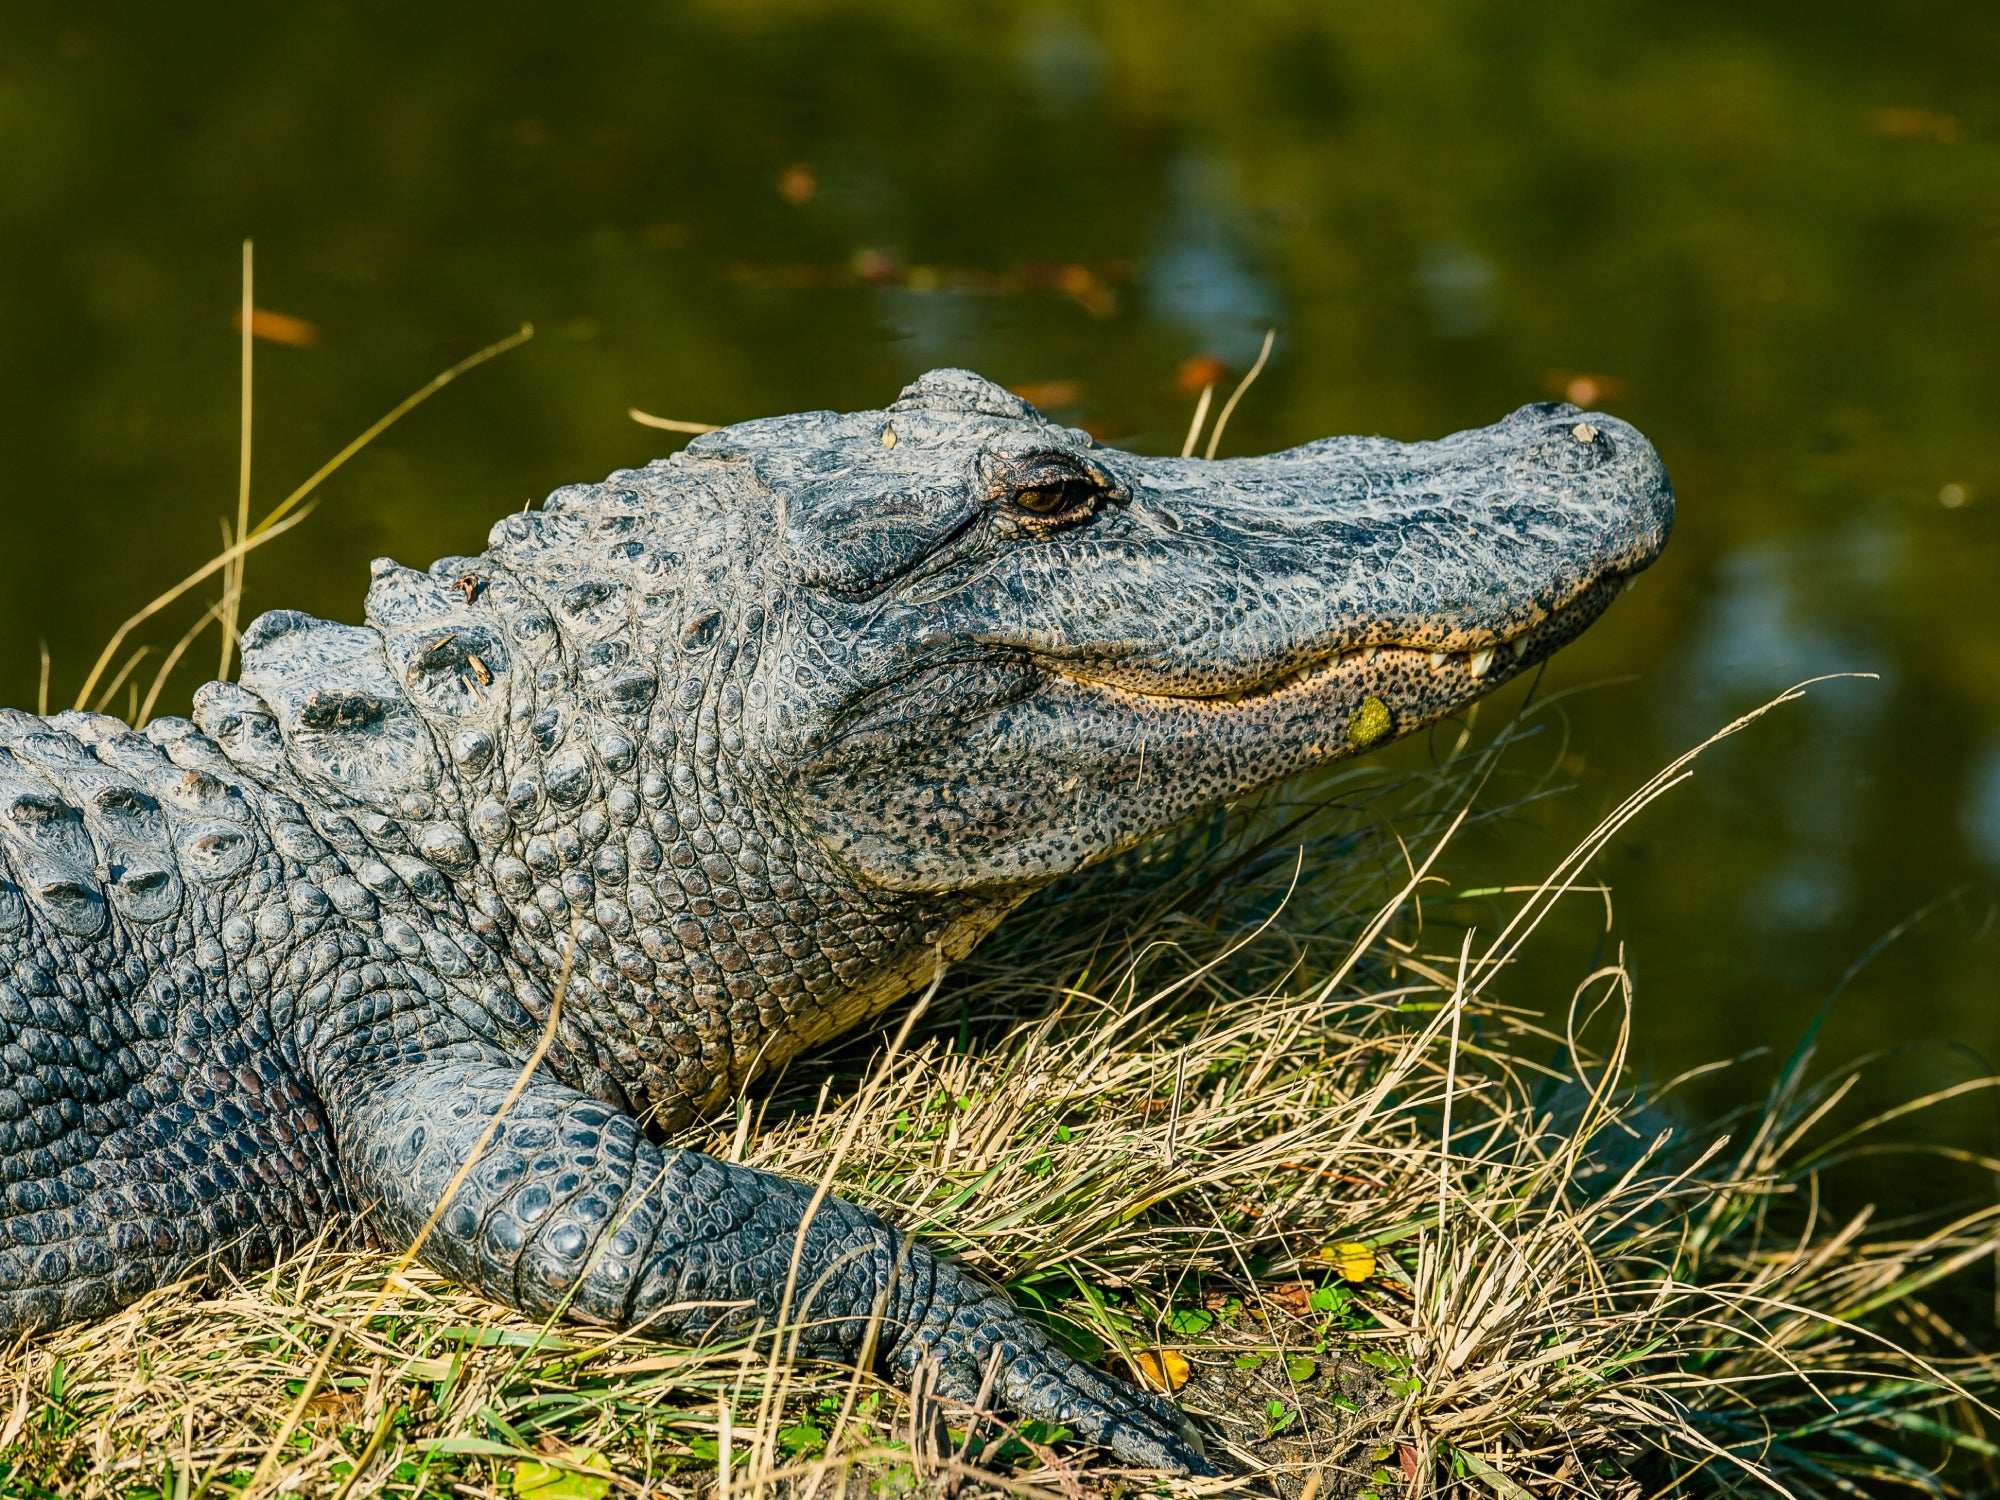 How to avoid an alligator encounter—and what to do if you can't